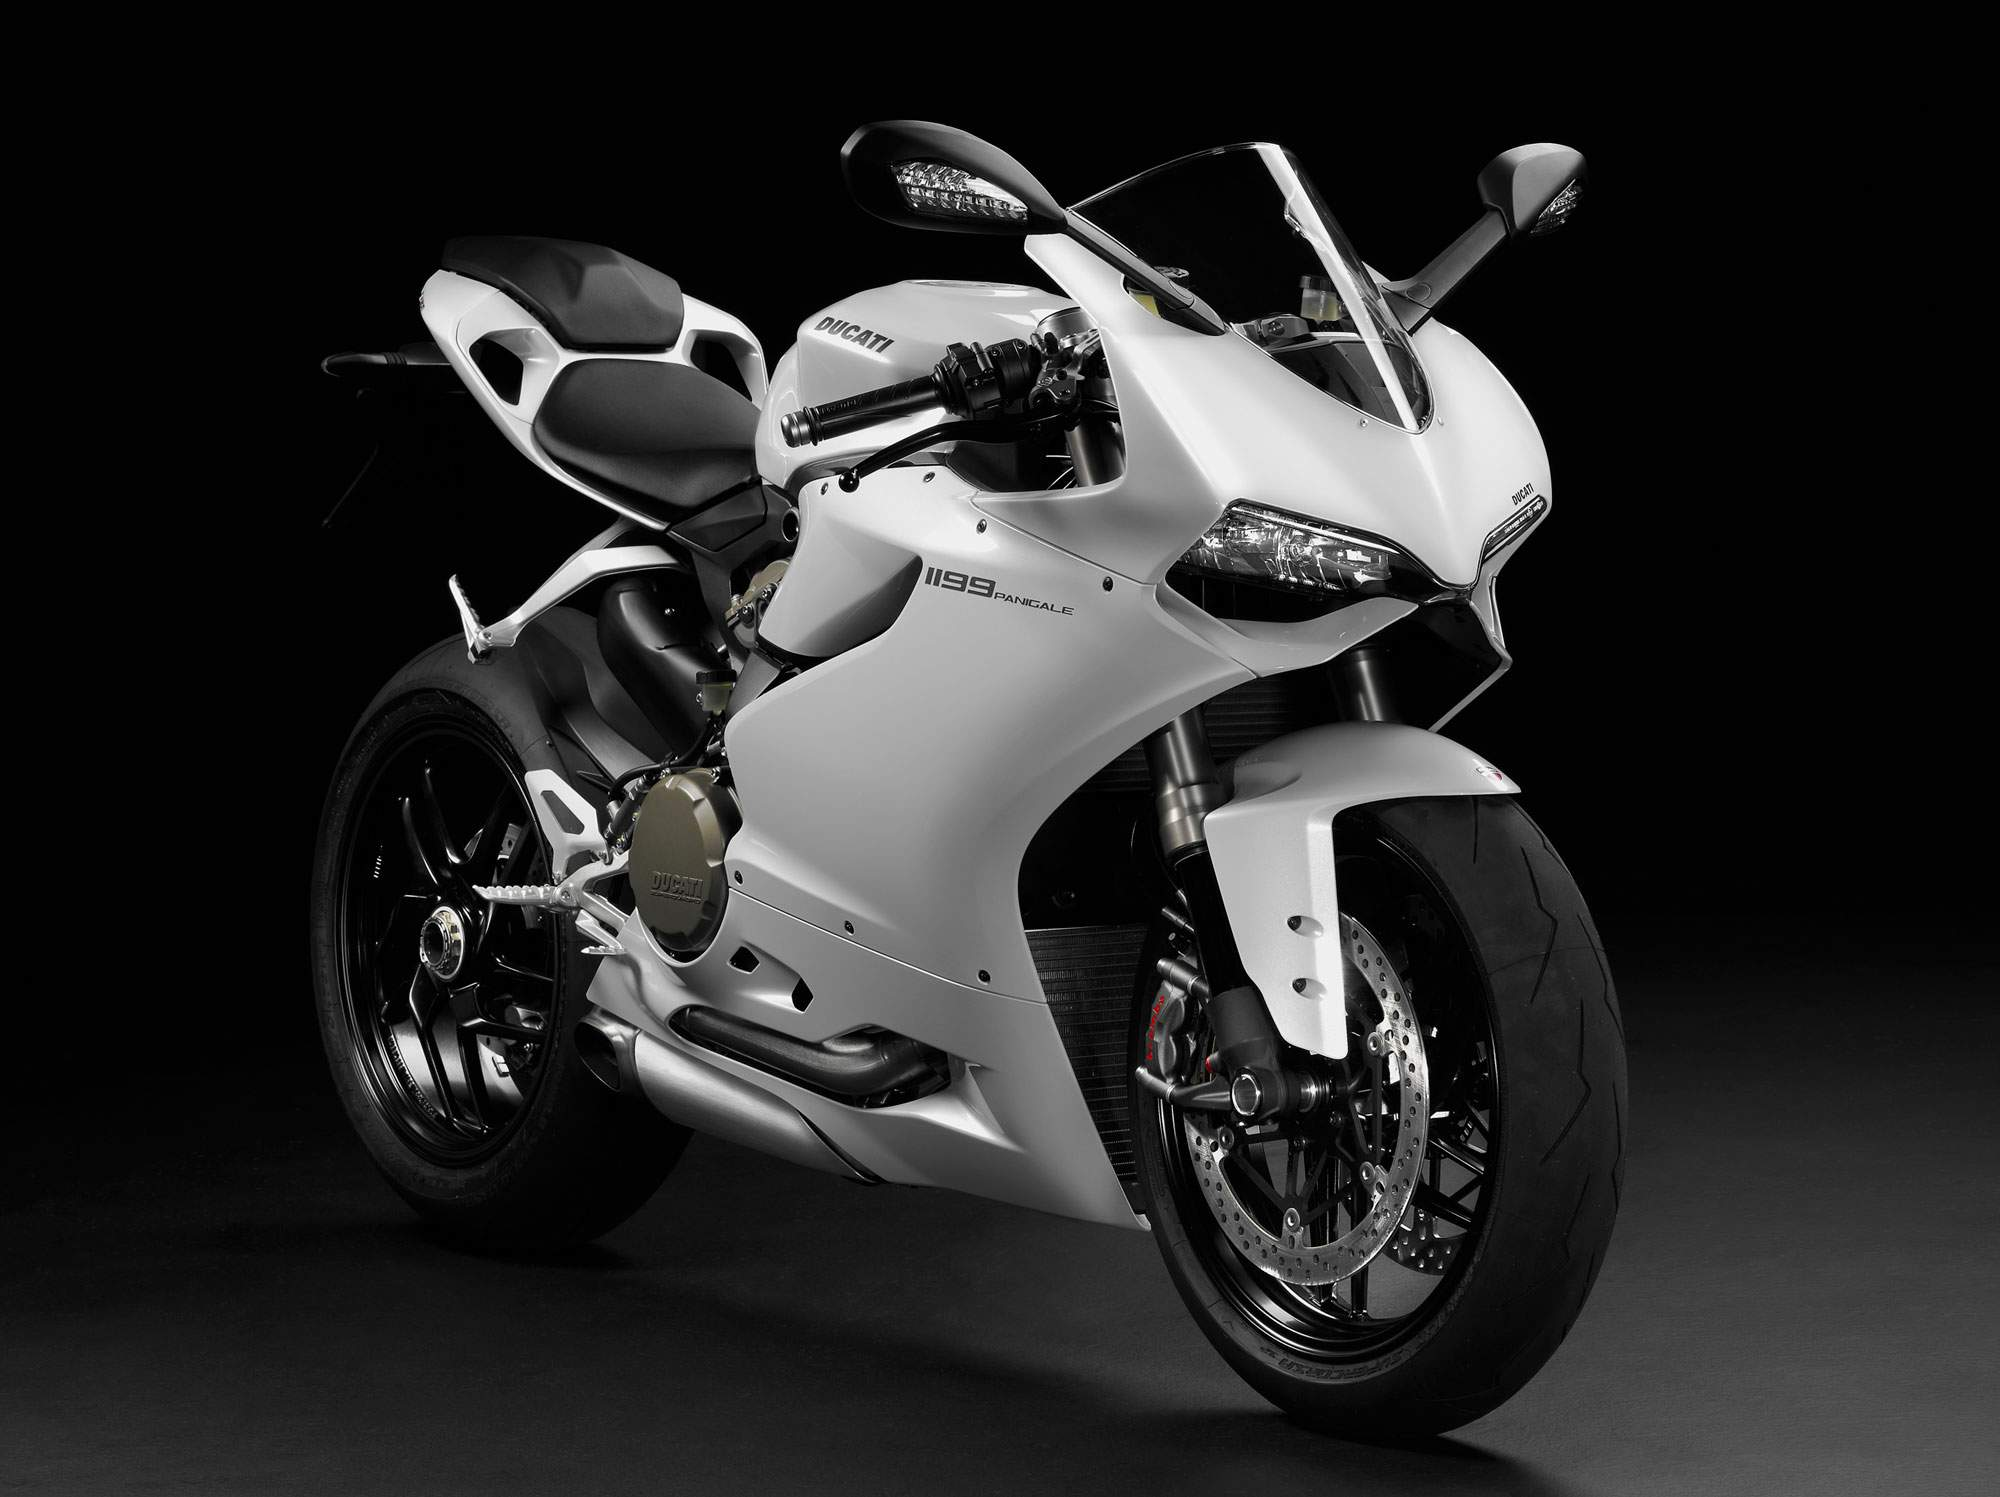 Ducati Superbike 1199 Panigale R 2013 wallpapers #13357